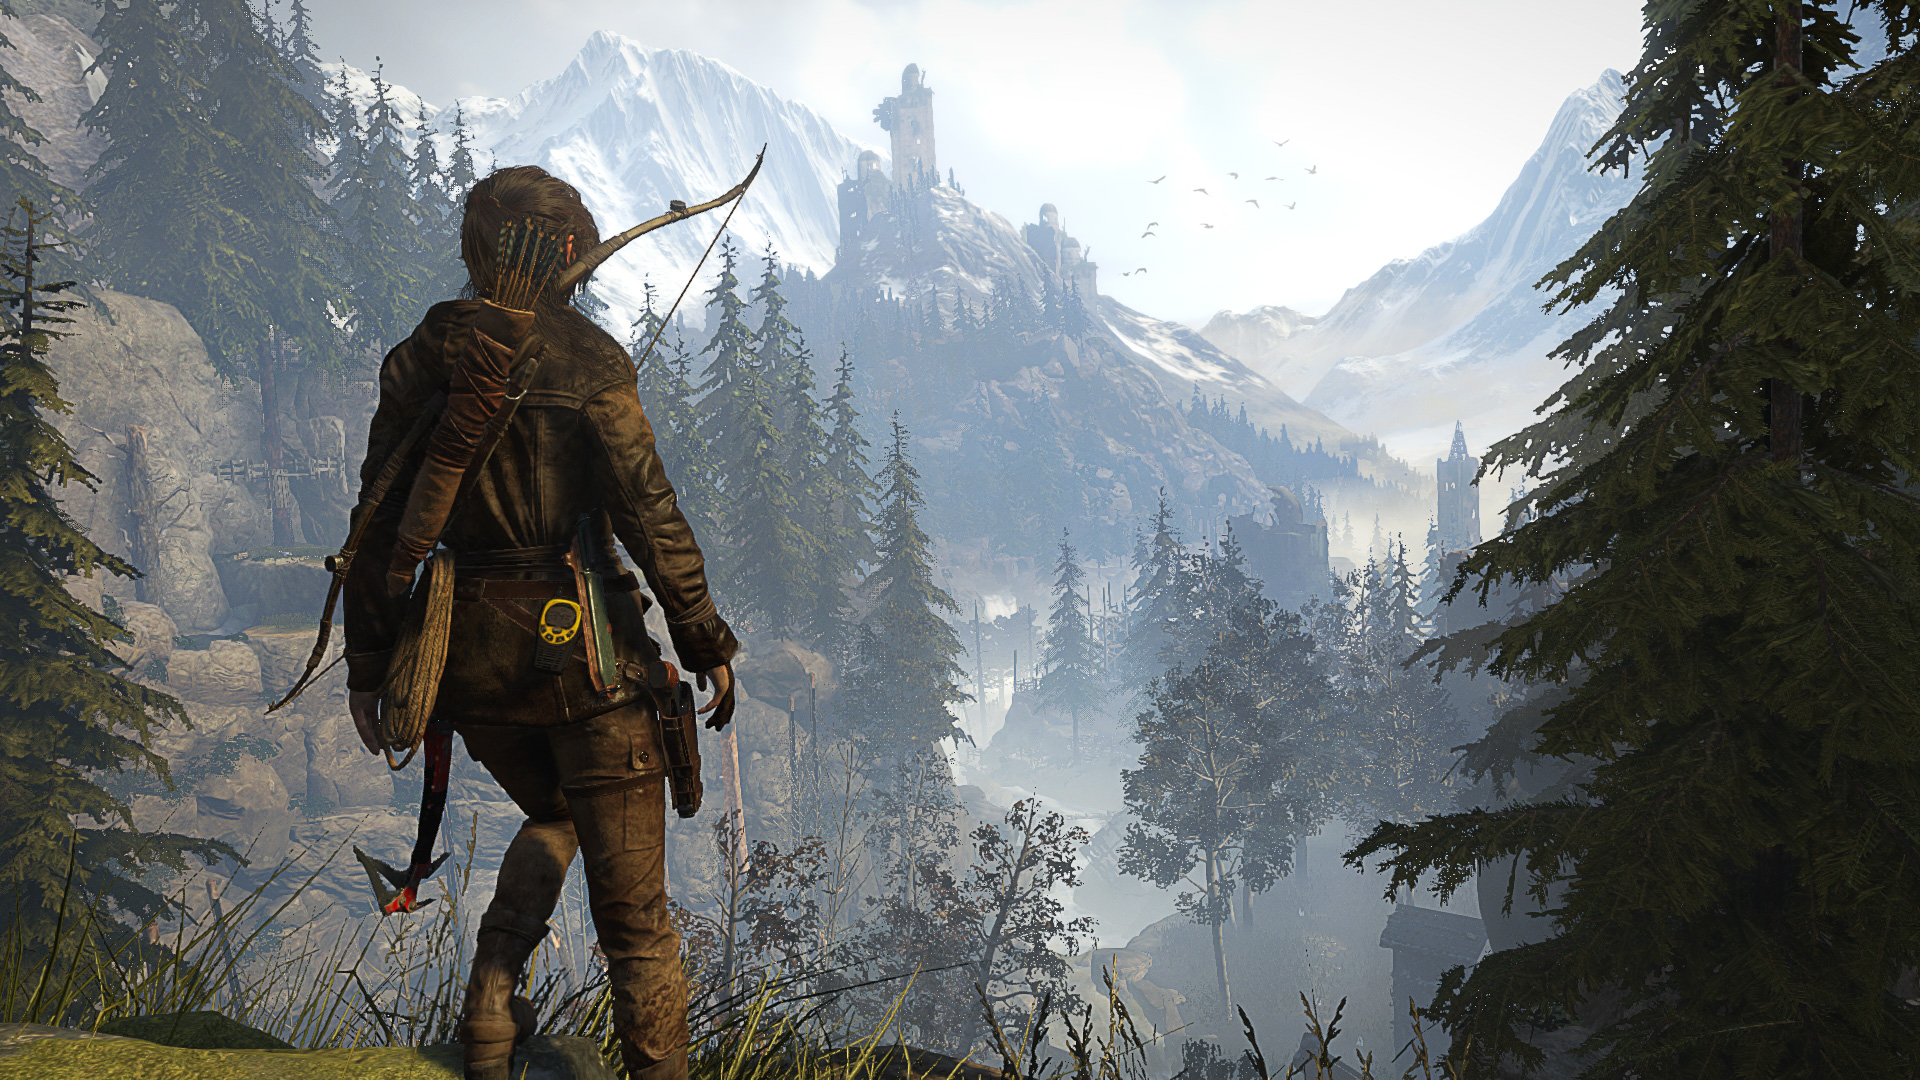 Microsoft's support of Tomb Raider reboot led to sequel's exclusive, Square Enix says